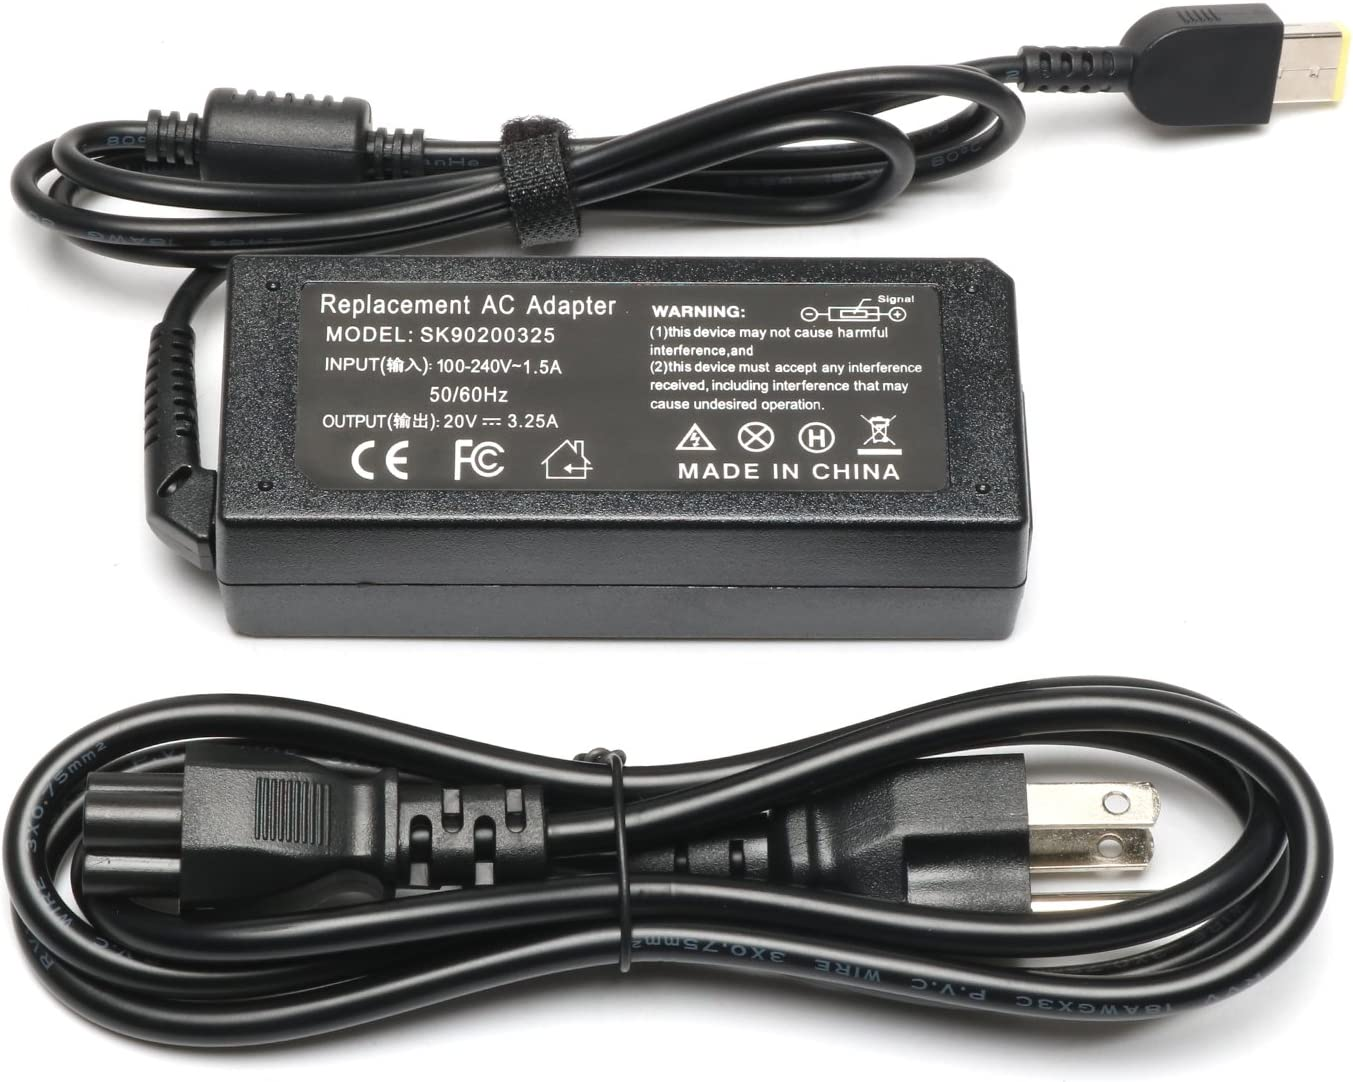 AC Adapter 65W Charger Replacement for Lenovo Edge 15 Z50-75 Z70-80 B50-80 Z40-70 ThinkPad E570 11e Yoga 11e Chromebook E555 E550 T540p T440 T440p ideapad G50-45 G51-35 G50-70 G50-80 power supply cord